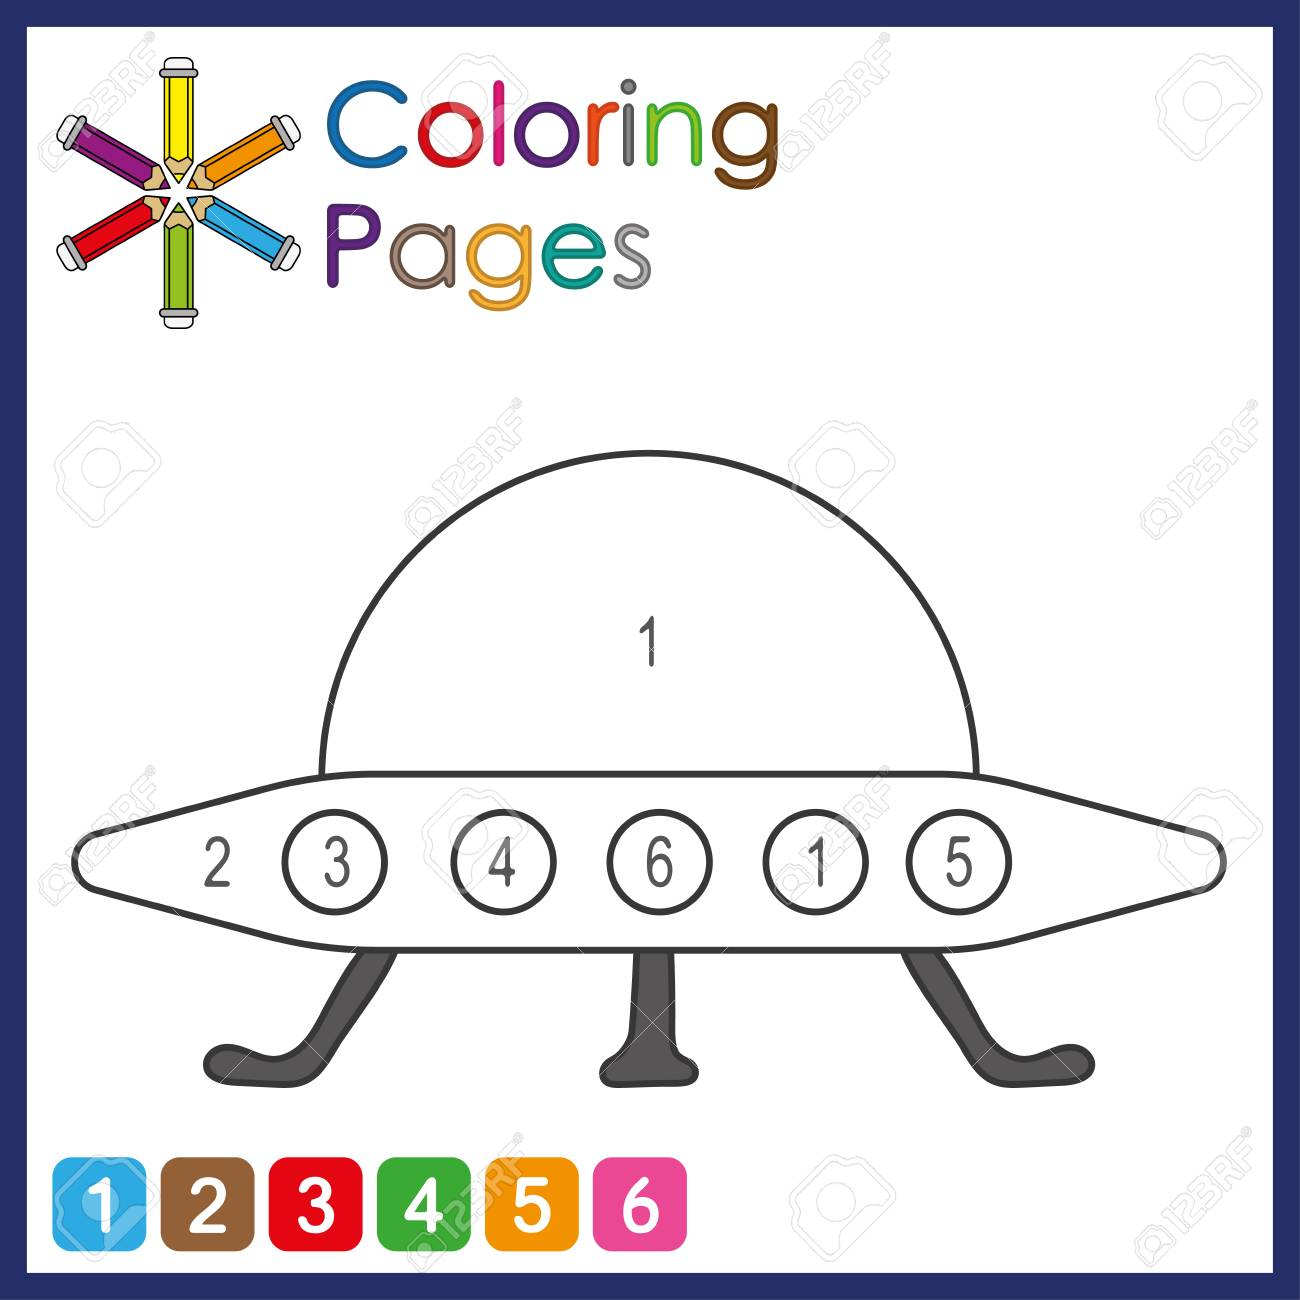 coloring page for kids, color the parts of the object according to numbers, color by numbers, activity pages - 122681798